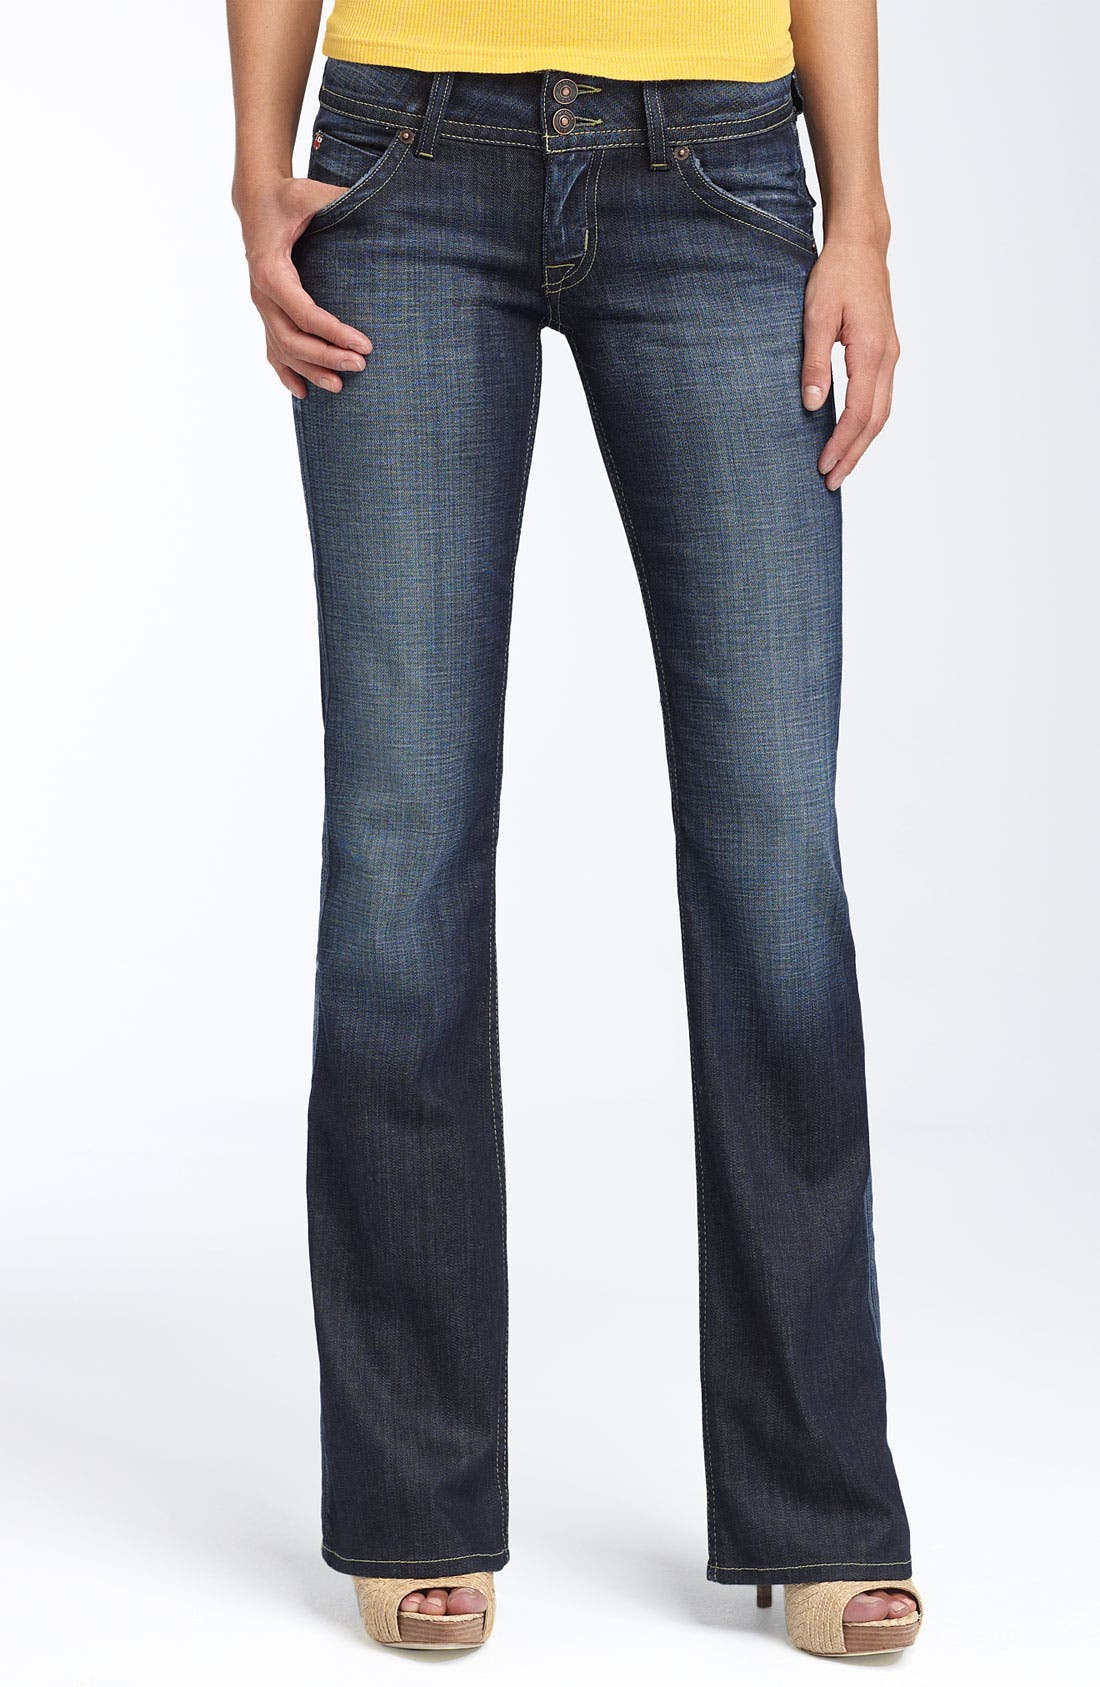 Alternate Image 1 Selected - Hudson Jeans Signature Flap Pocket Bootcut Jeans (Elm)